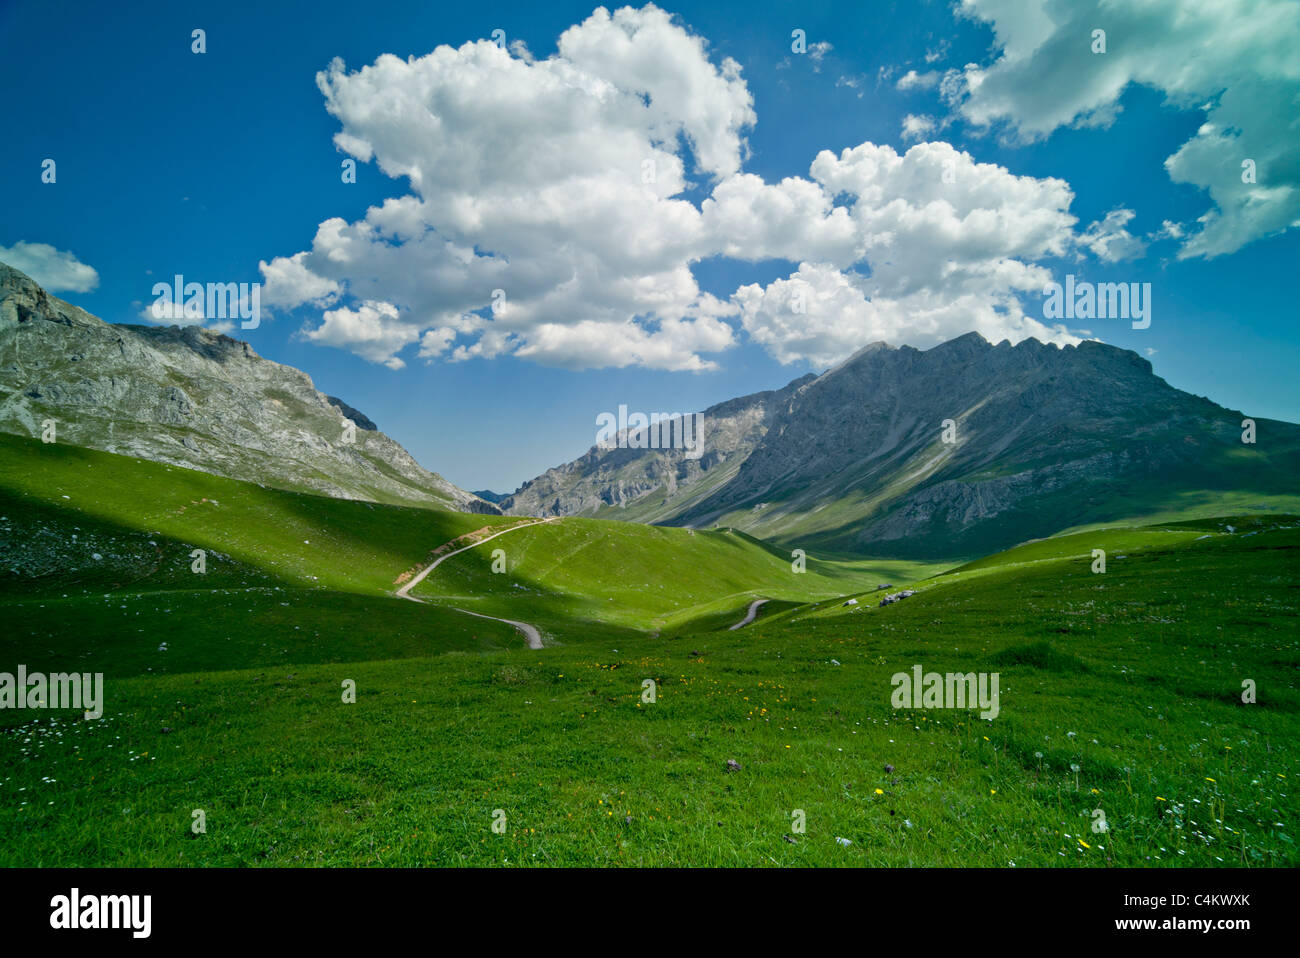 Walking country: The Picos de Europa, Cantabria, Northern Spain - Stock Image